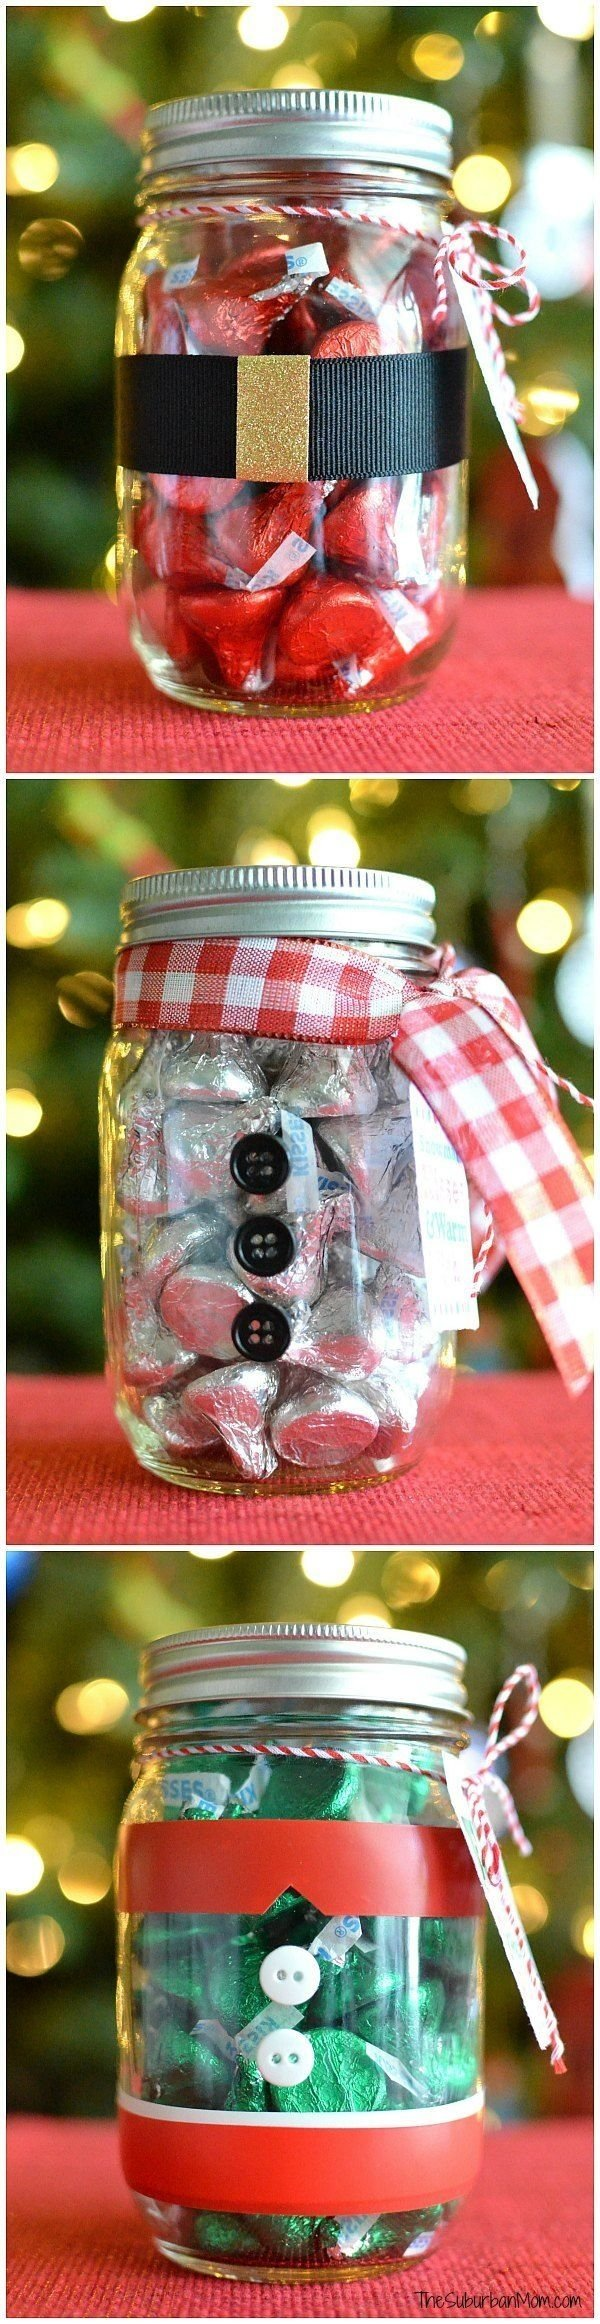 10 Great Holiday Gift Ideas For Employees 36 best teacher gifts images on pinterest gift ideas creative 4 2021